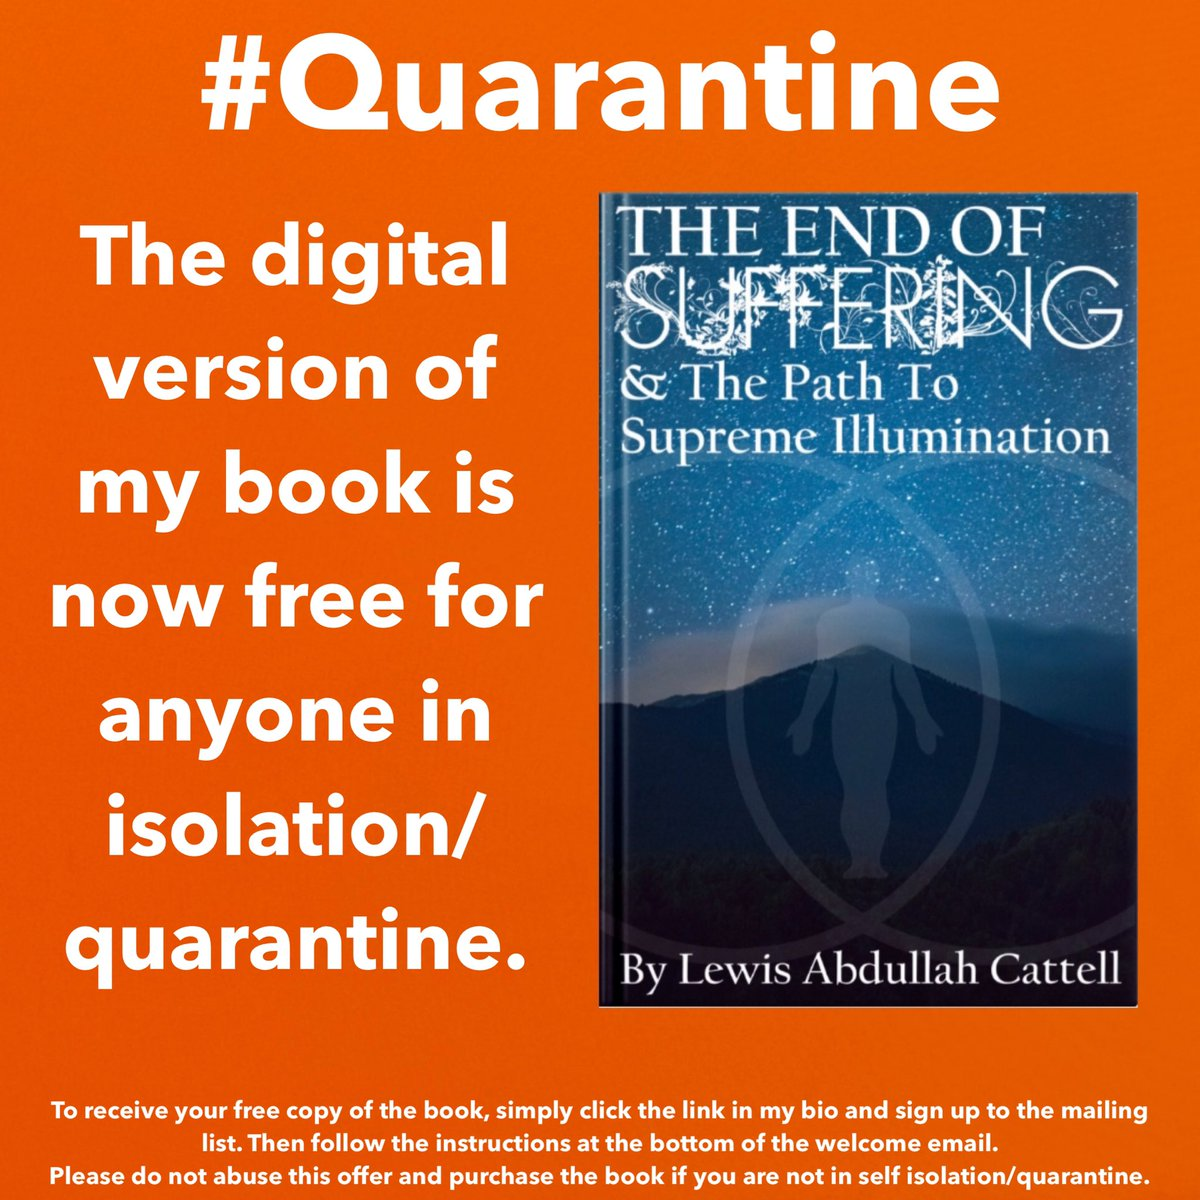 @bSweatshirt You can read my book for free if you are in quarantine (link in bio)